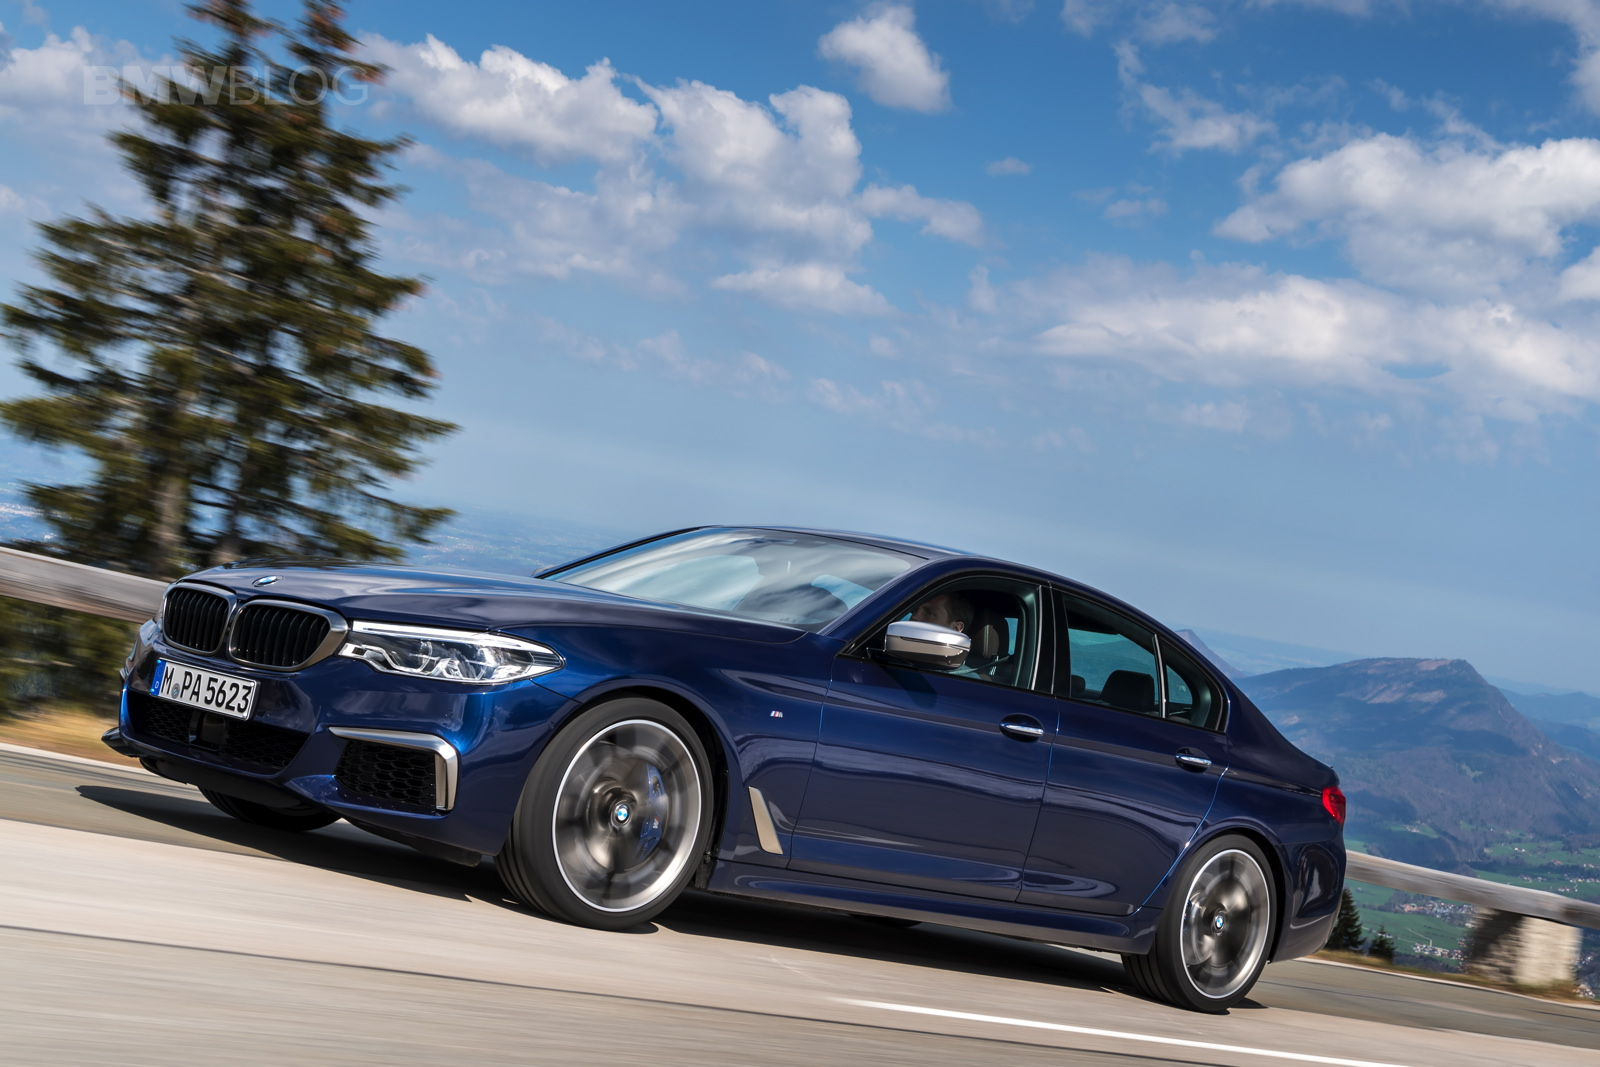 Bmw 3 Series G20 >> FIRST DRIVE: The Fastest 5 Series Ever - BMW M550i xDrive